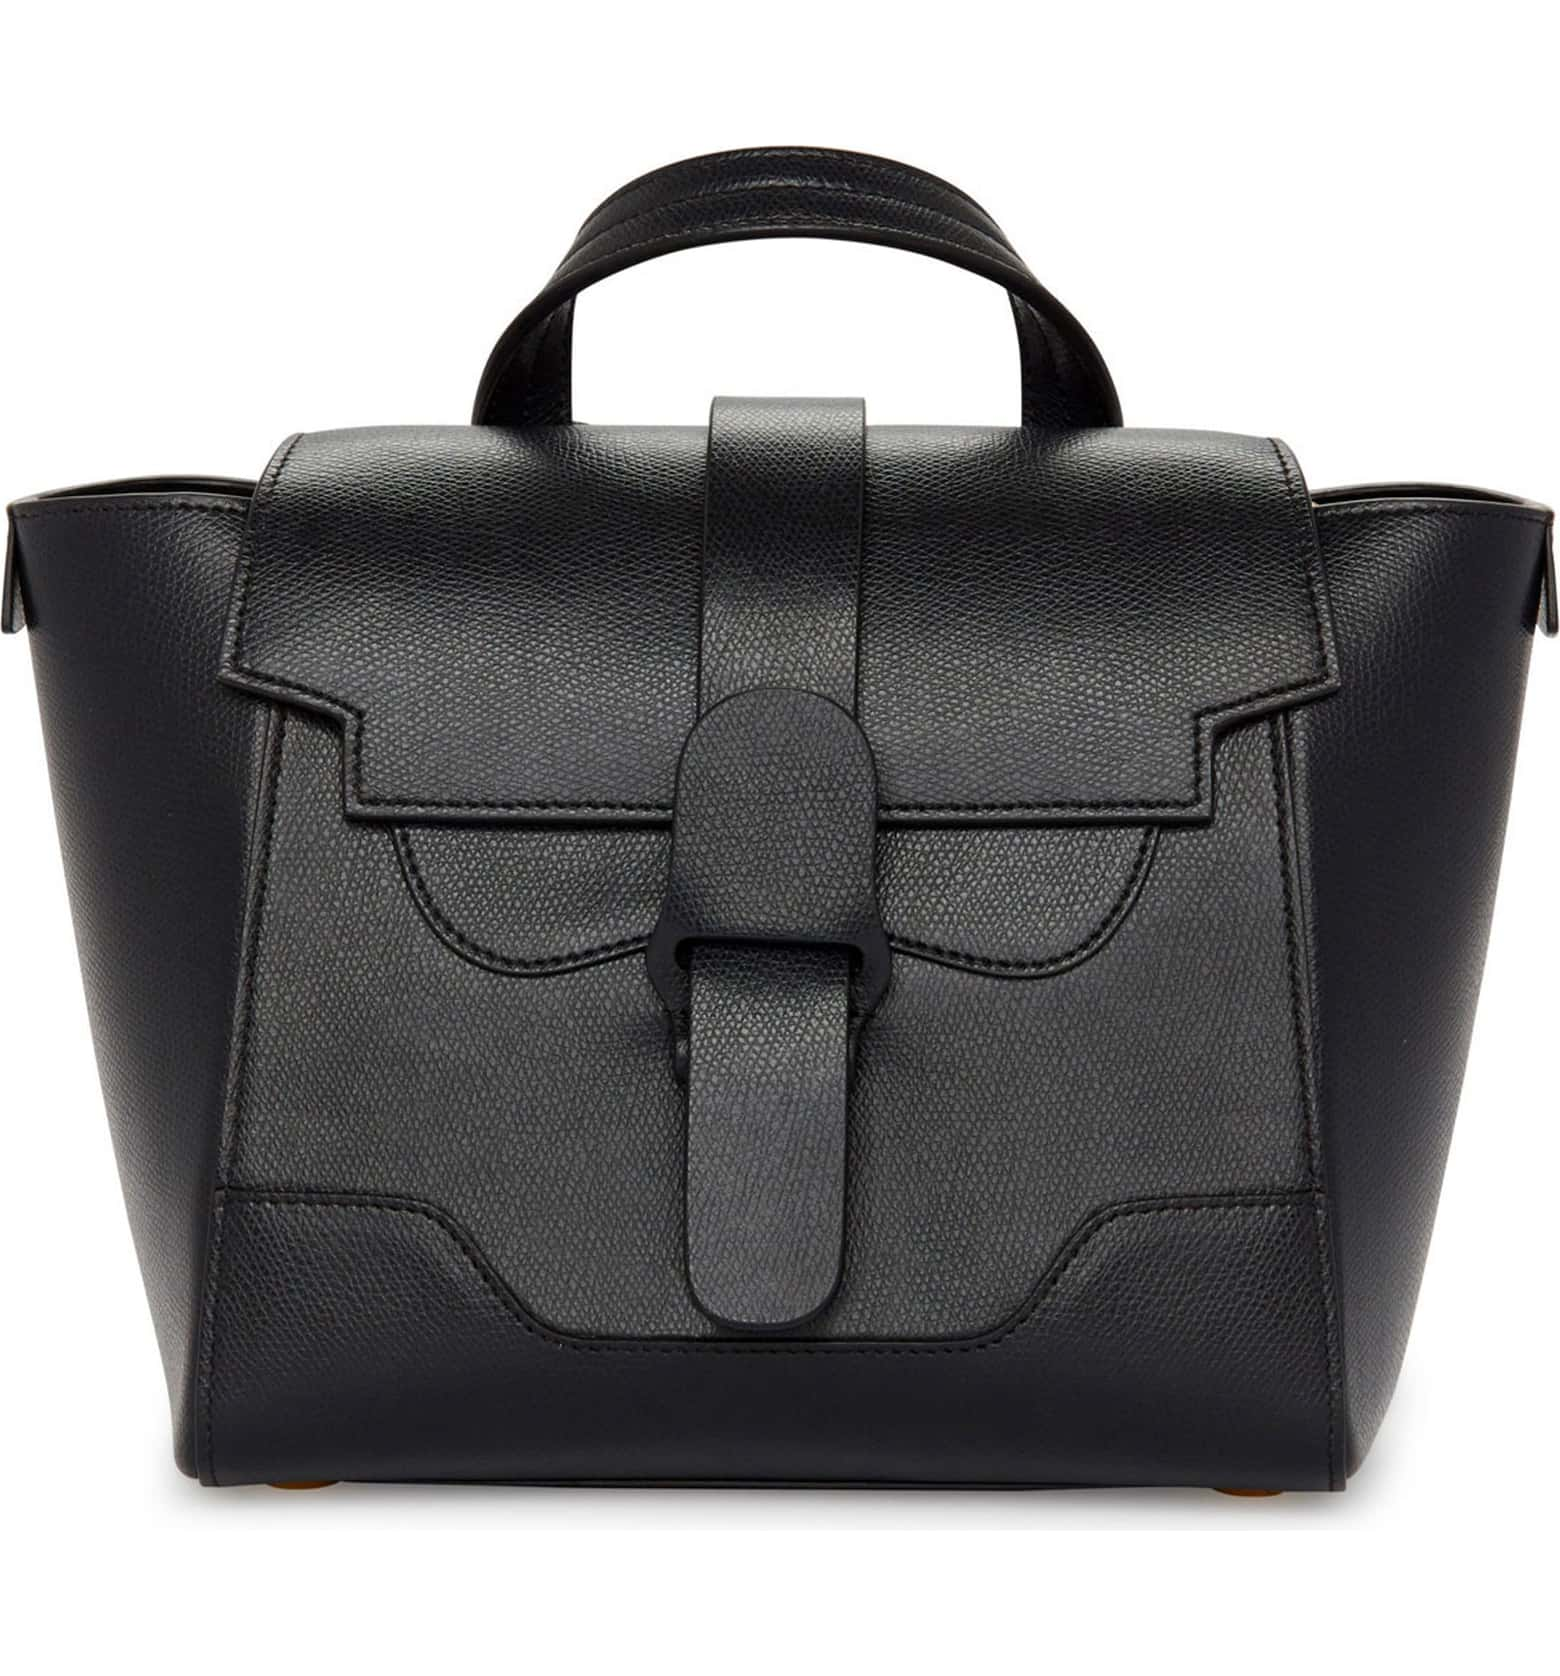 7ea19a31016c 20 Best Brands With Handbags Under $1000 – Coffee and Handbags